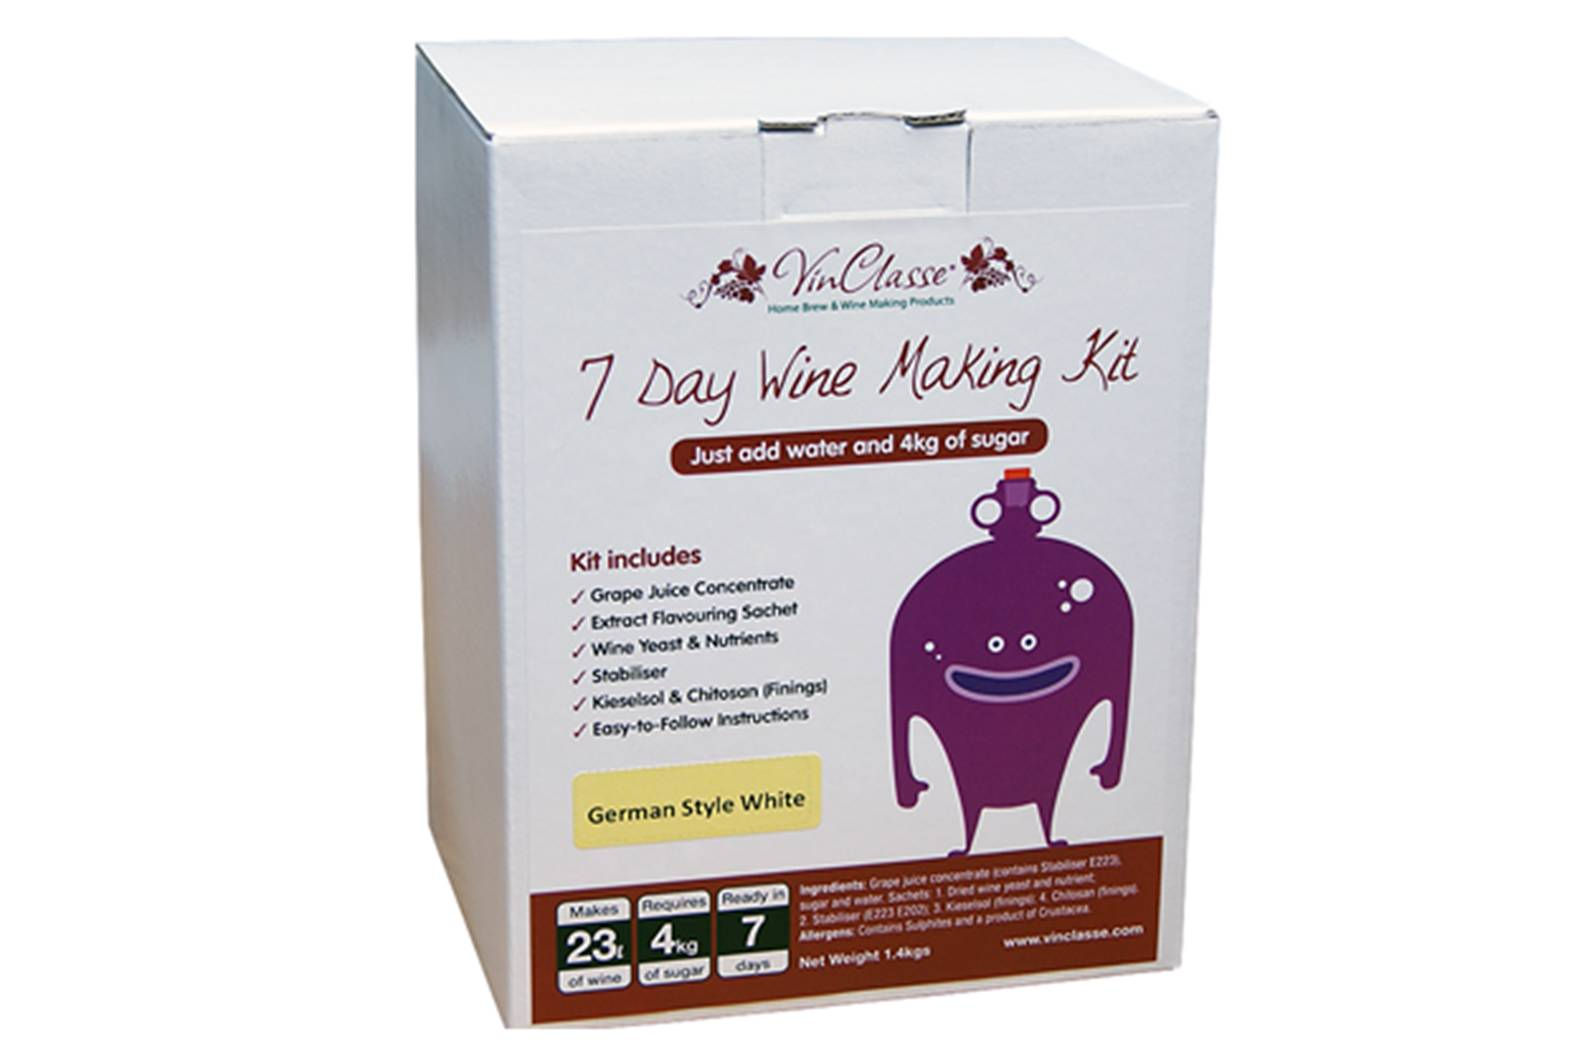 cardboard box packaging for wine making kit